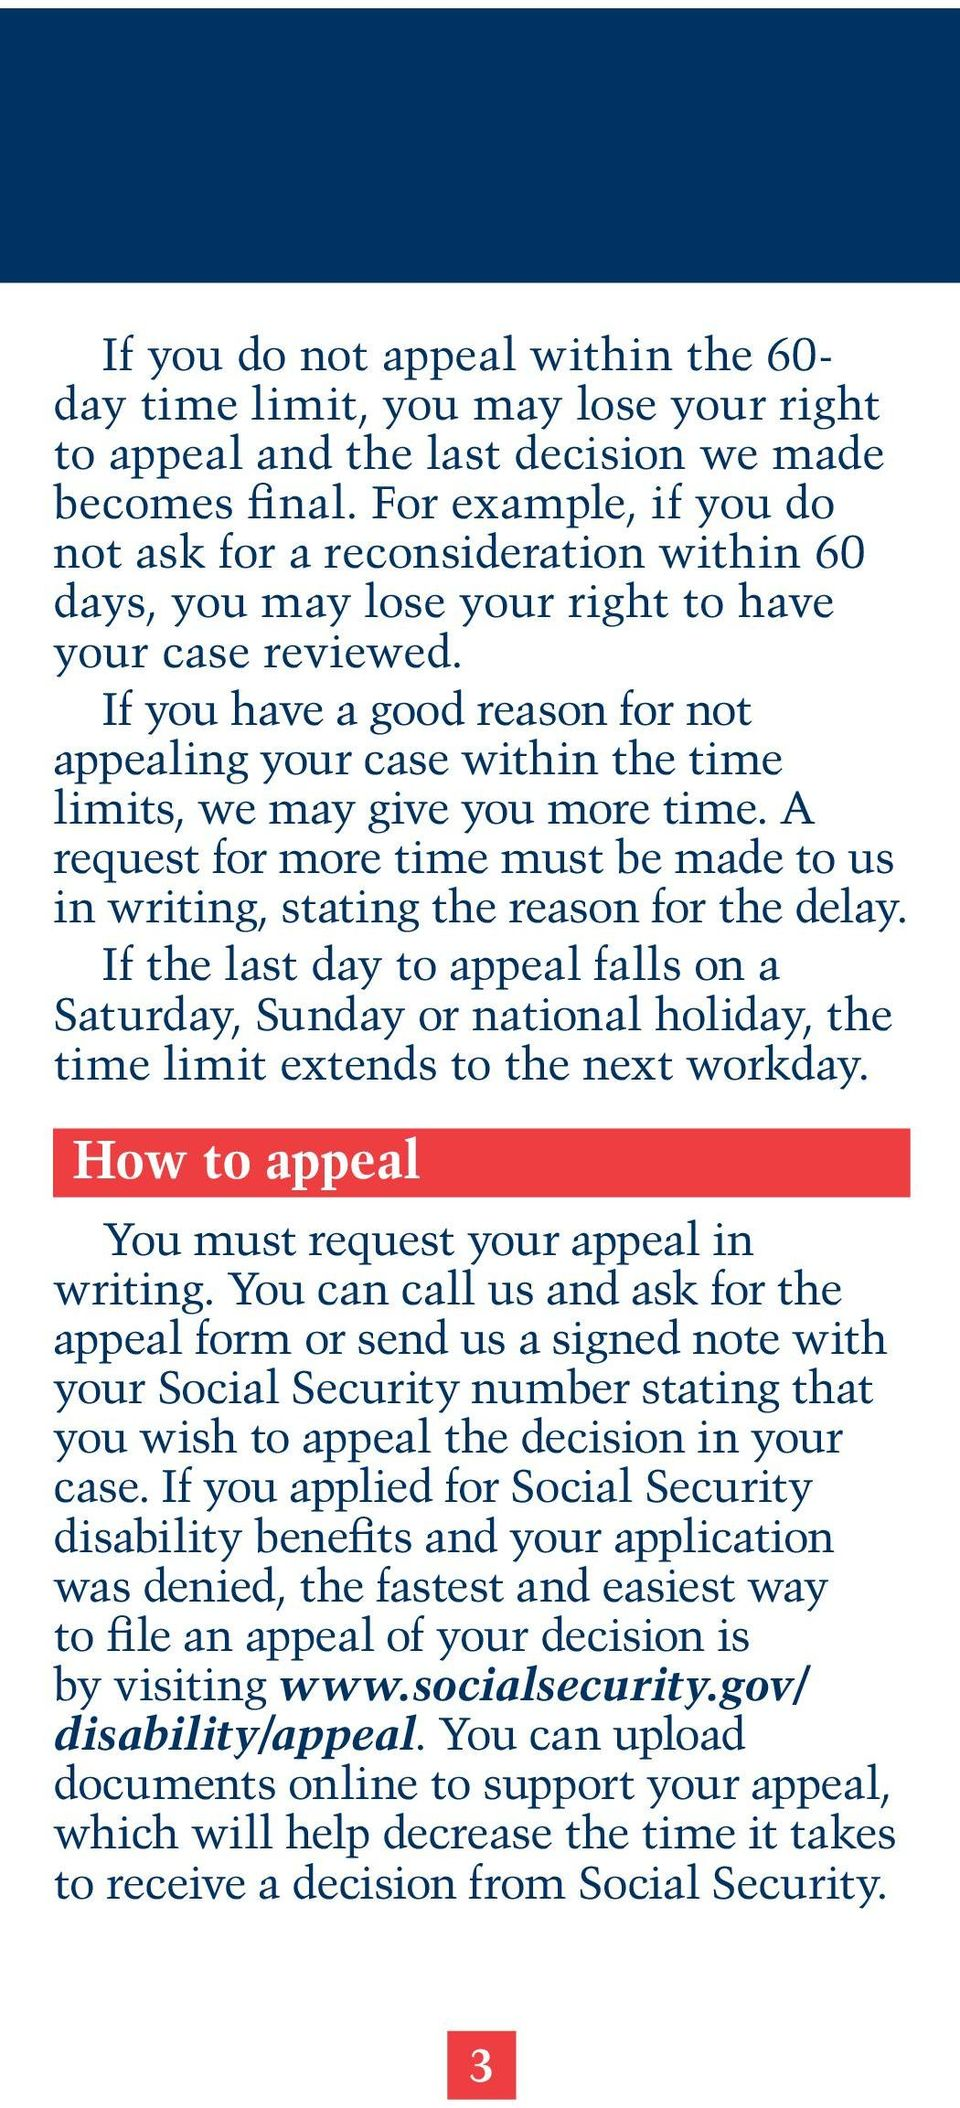 If you have a good reason for not appealing your case within the time limits, we may give you more time. A request for more time must be made to us in writing, stating the reason for the delay.